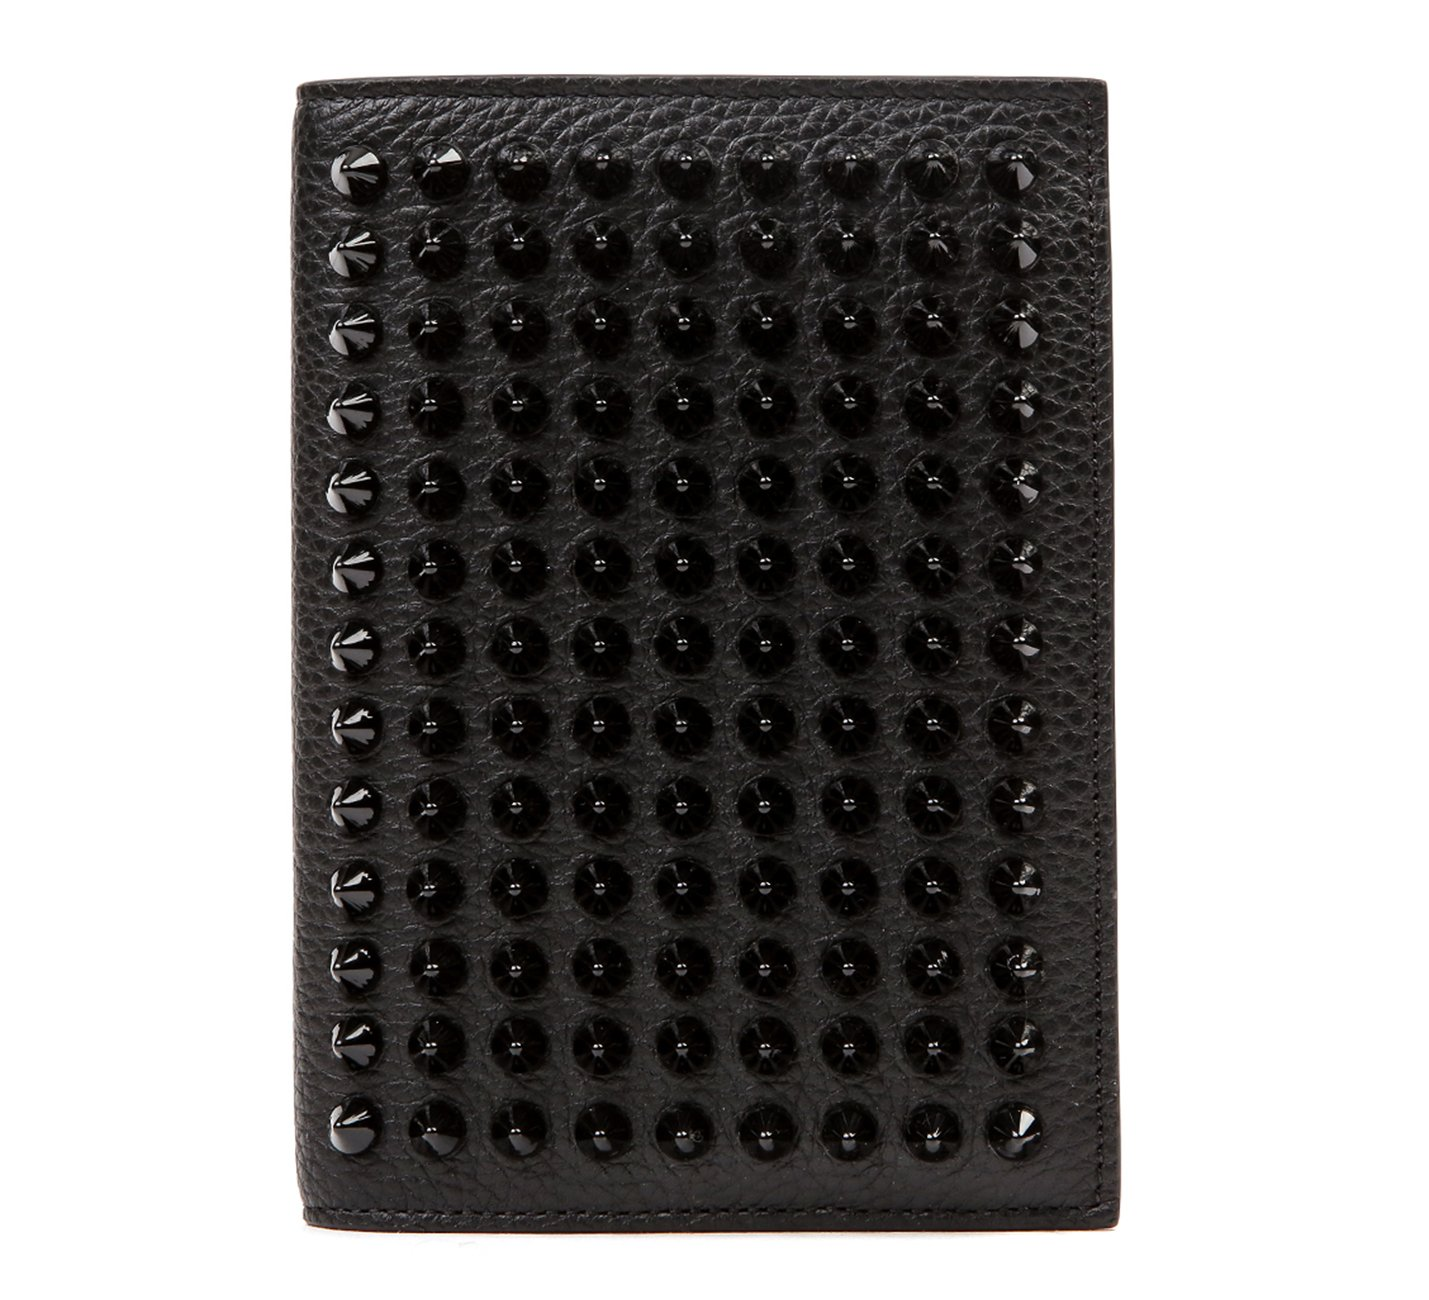 Wiberlux Christian Louboutin Unisex Studded Passport Wallet One Size Black by Wiberlux